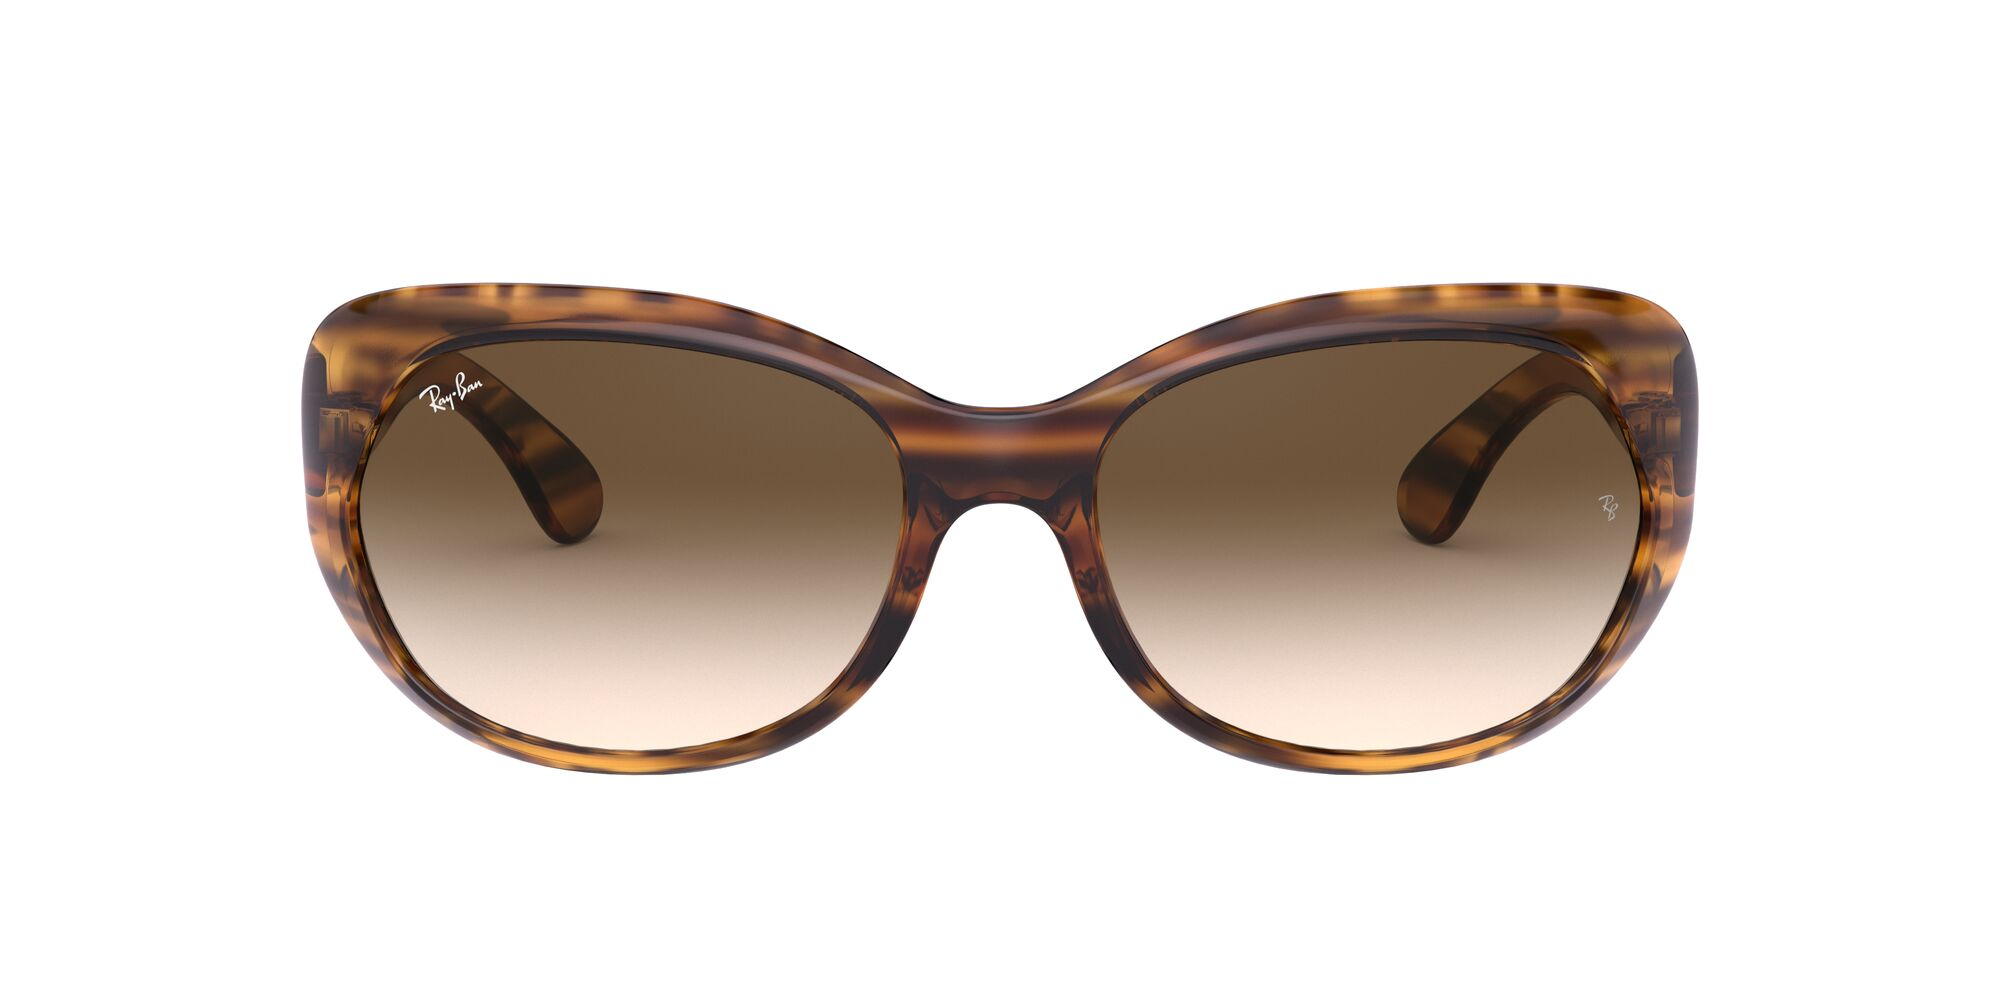 Front Ray-Ban Ray-Ban 0RB4325 820/13 58/18 Rood, Bruin/Bruin